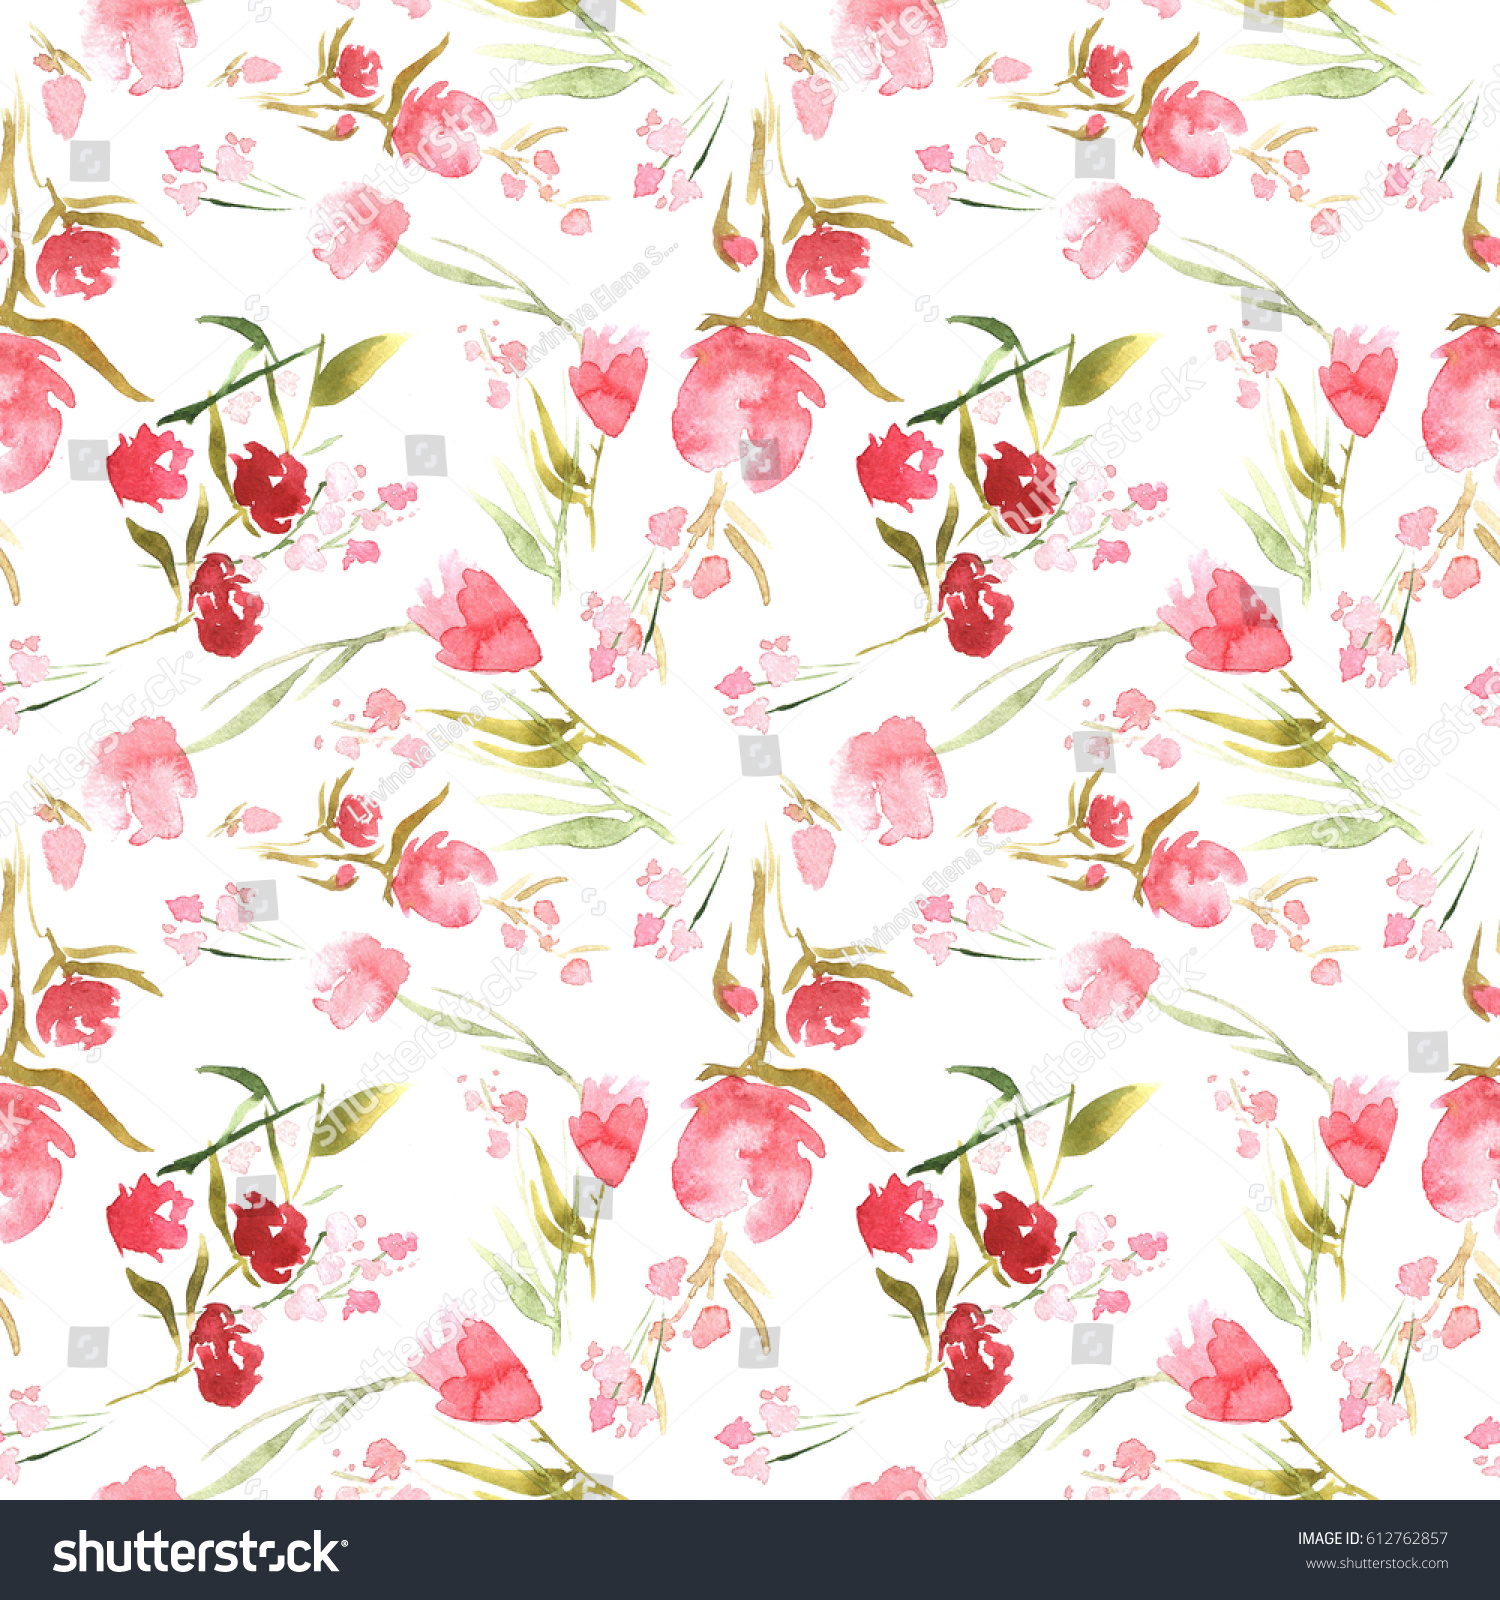 Seamless Pattern Spring Flowers Can Be Stock Illustration 612762857